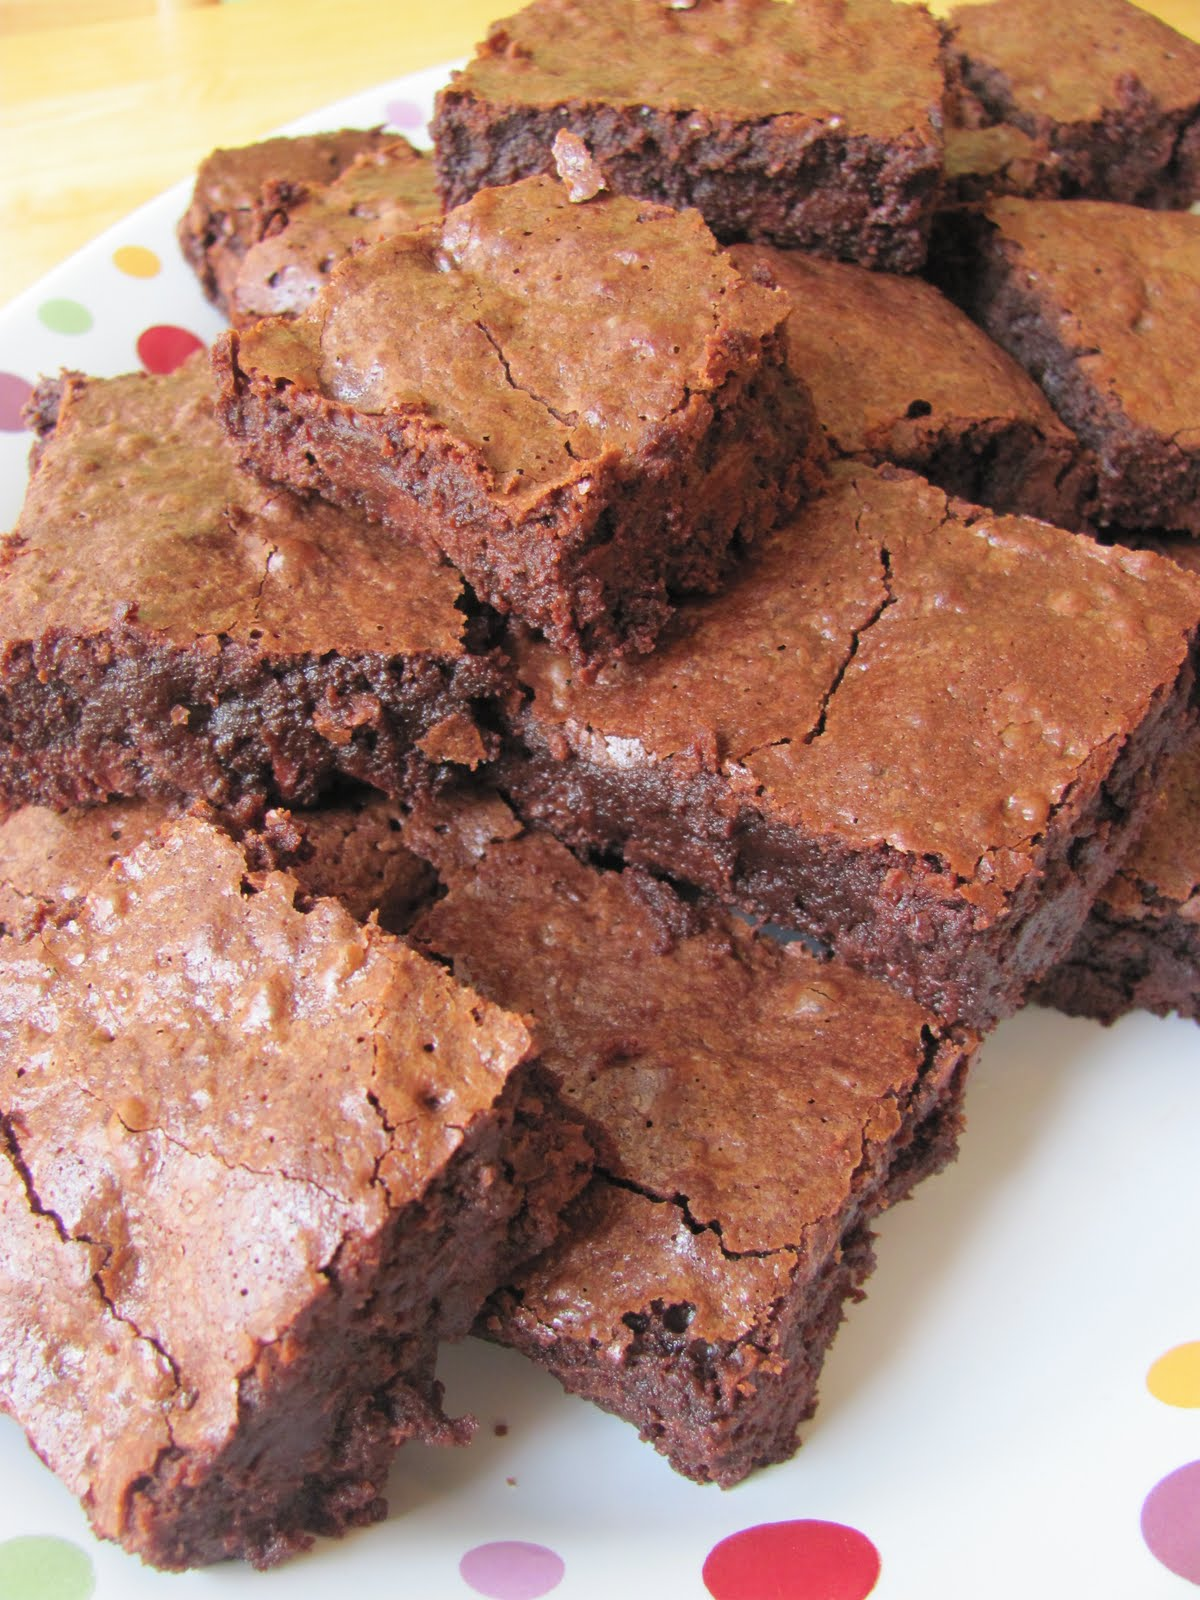 Real Kitchen. Real Life.: Rich Homemade Brownies